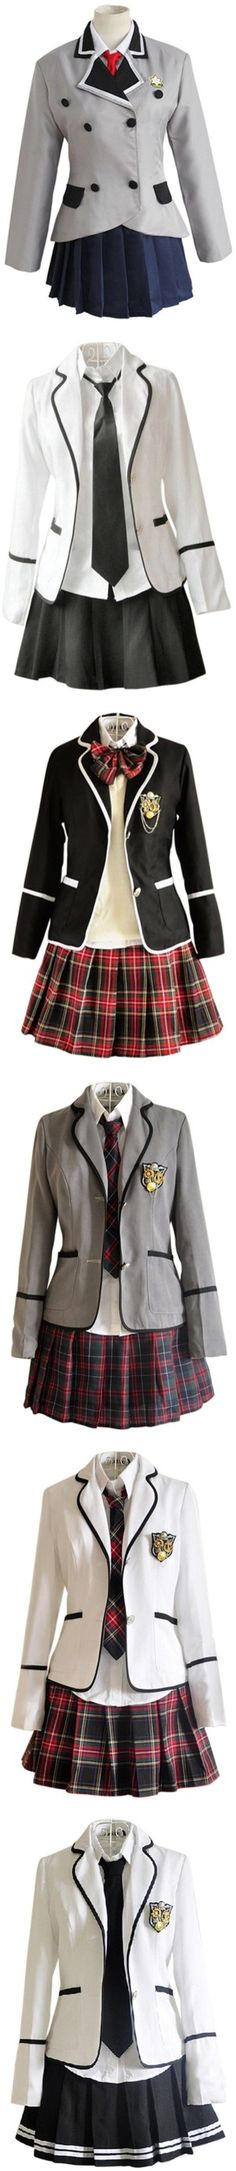 School Uniform by bubble-loves-you on Polyvore featuring cosplay, costumes, dresses, extras, outfits, uniforms, other and costume